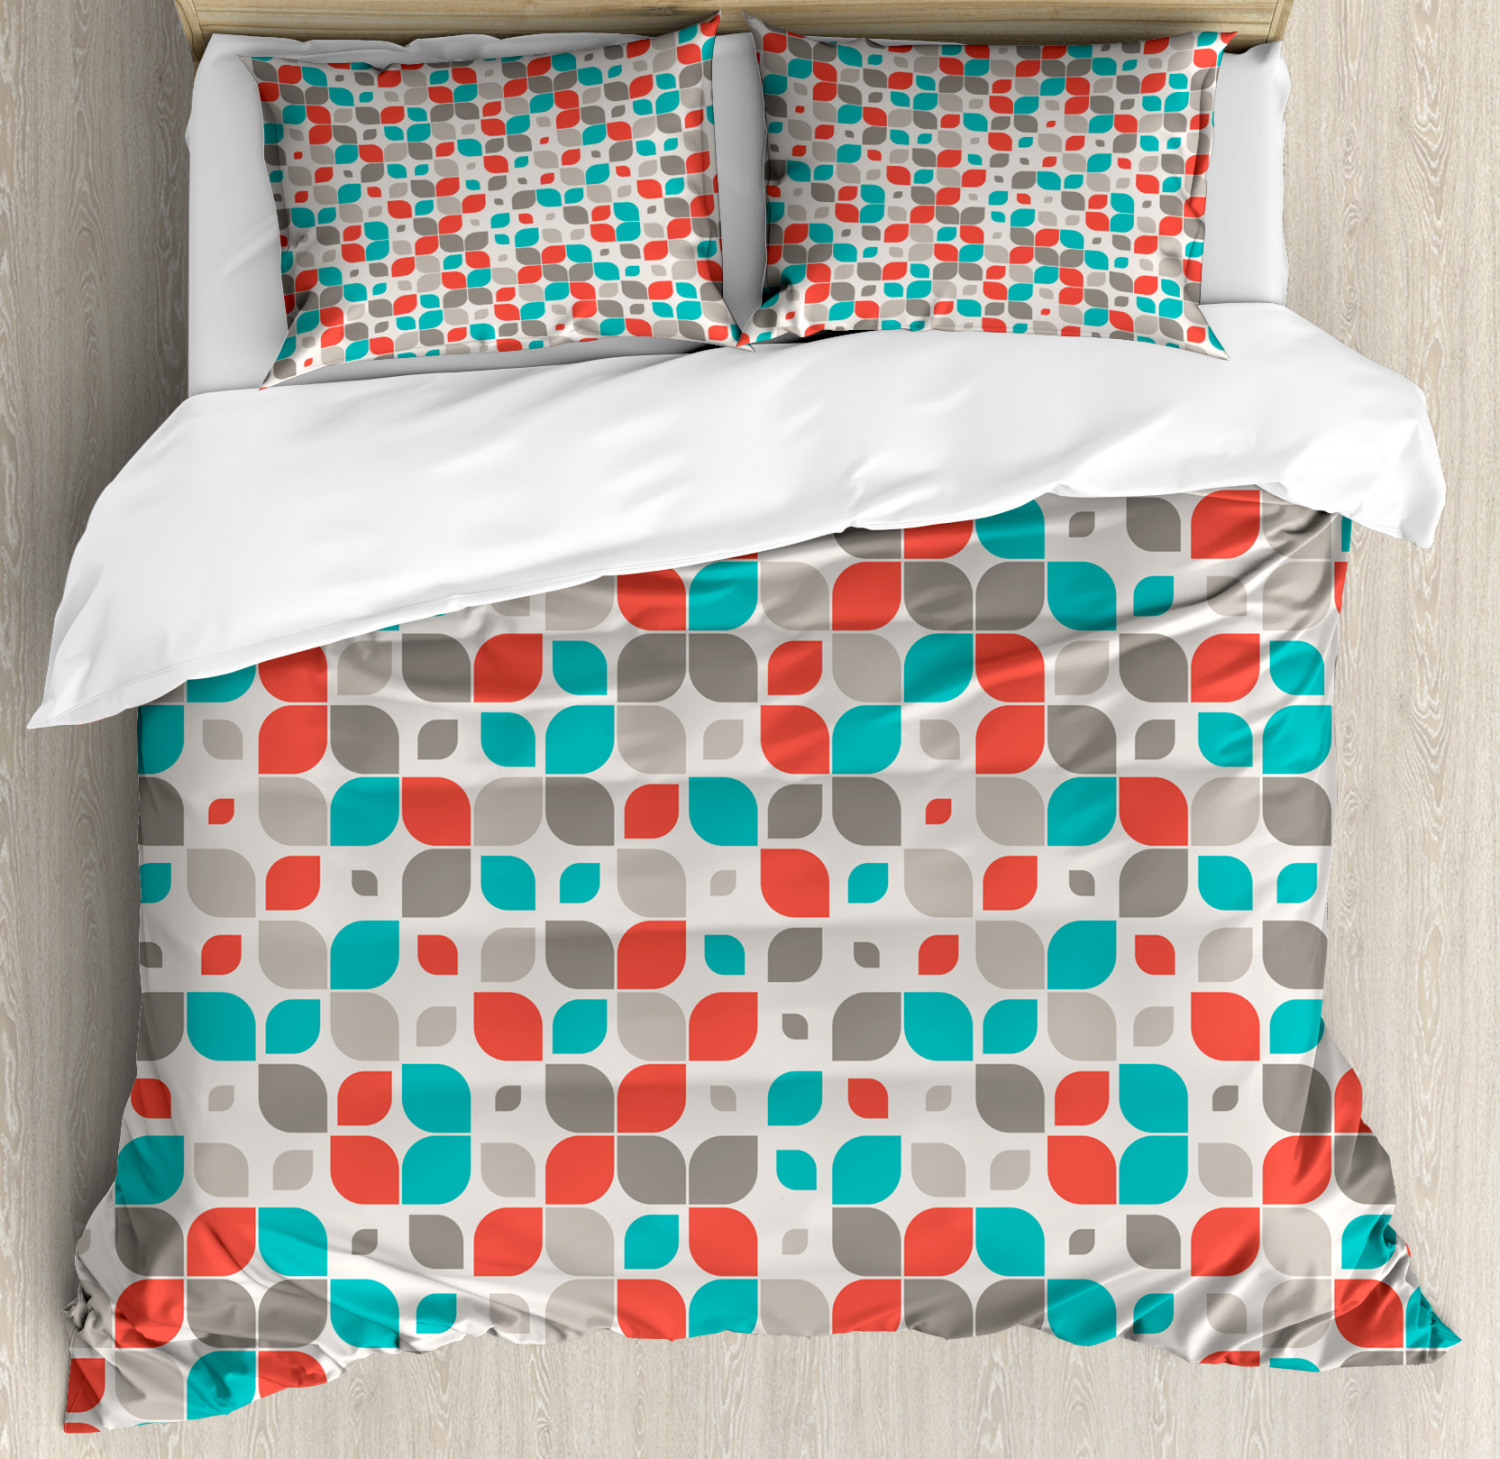 Traditional Duvet Cover Set with Pillow Shams Retro Mosaic Motif Print